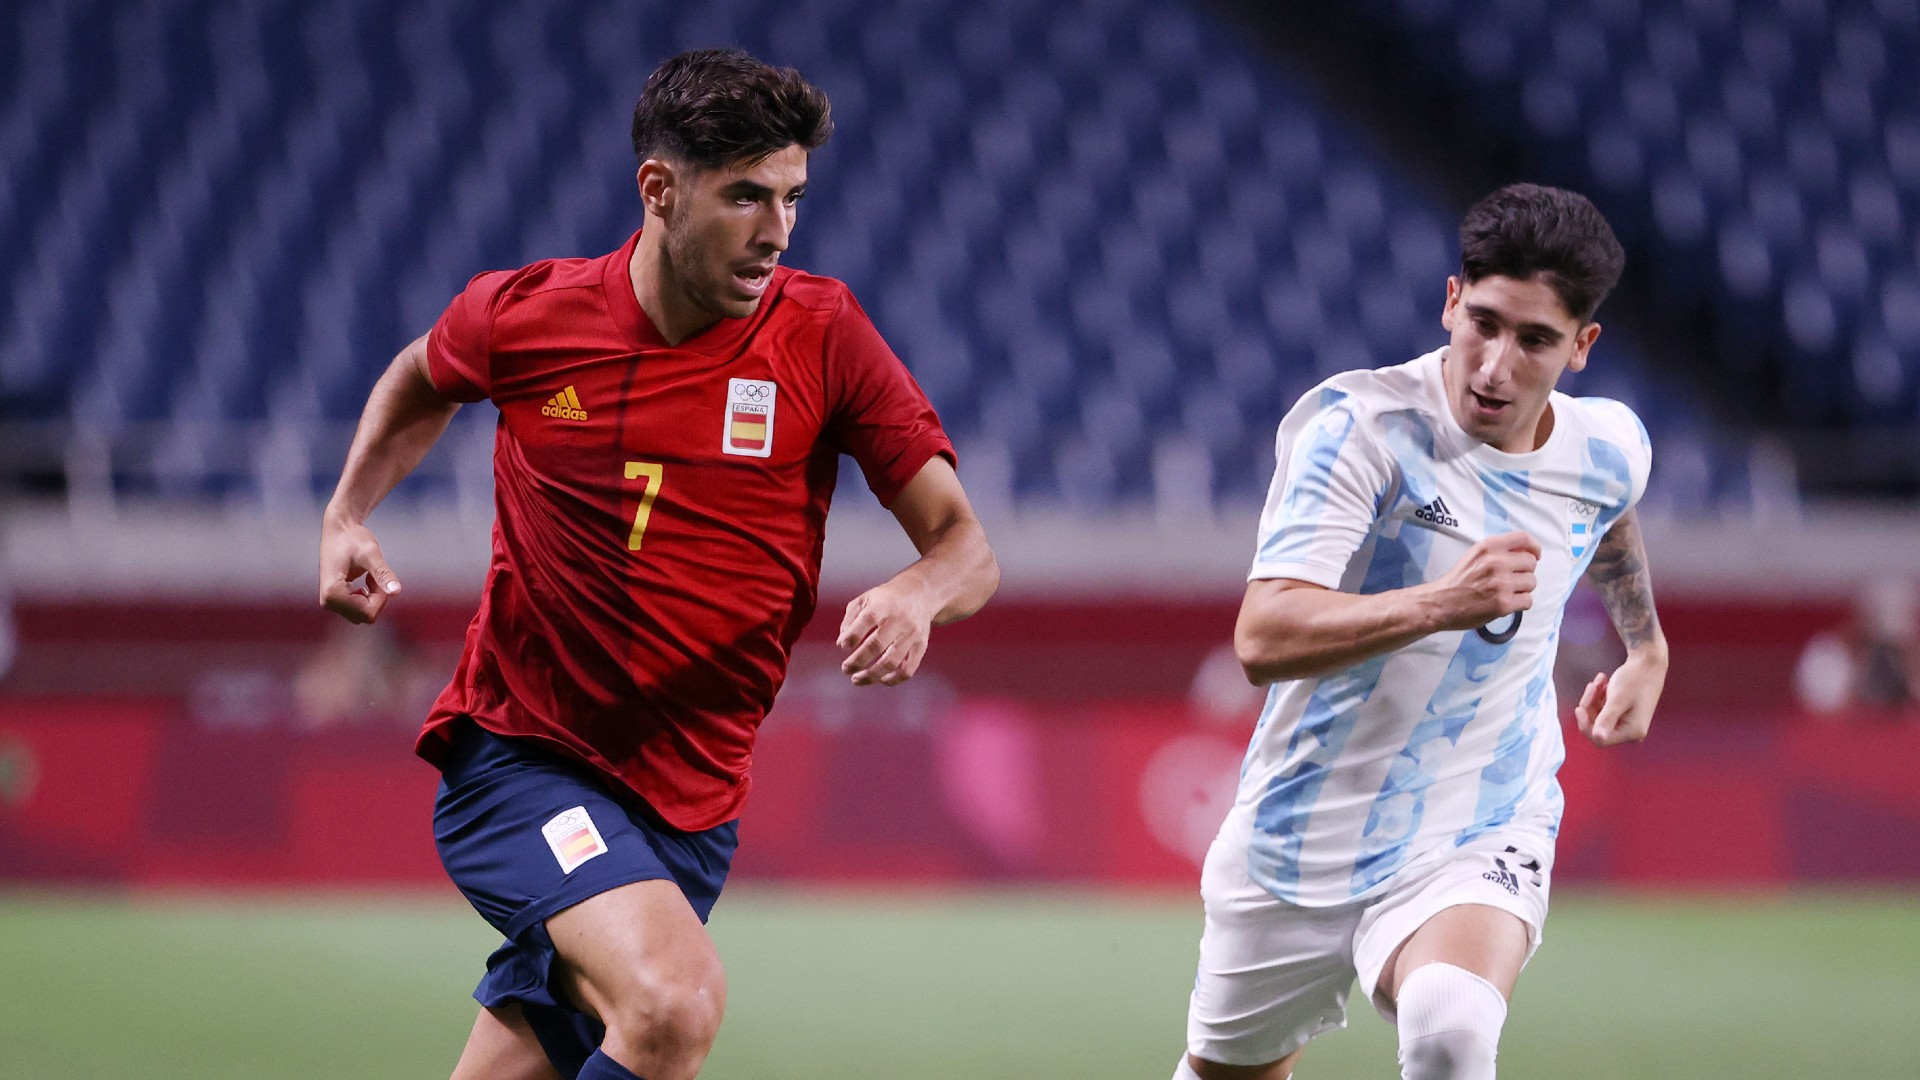 Japan vs Spain: TV channel, live stream, team news and preview